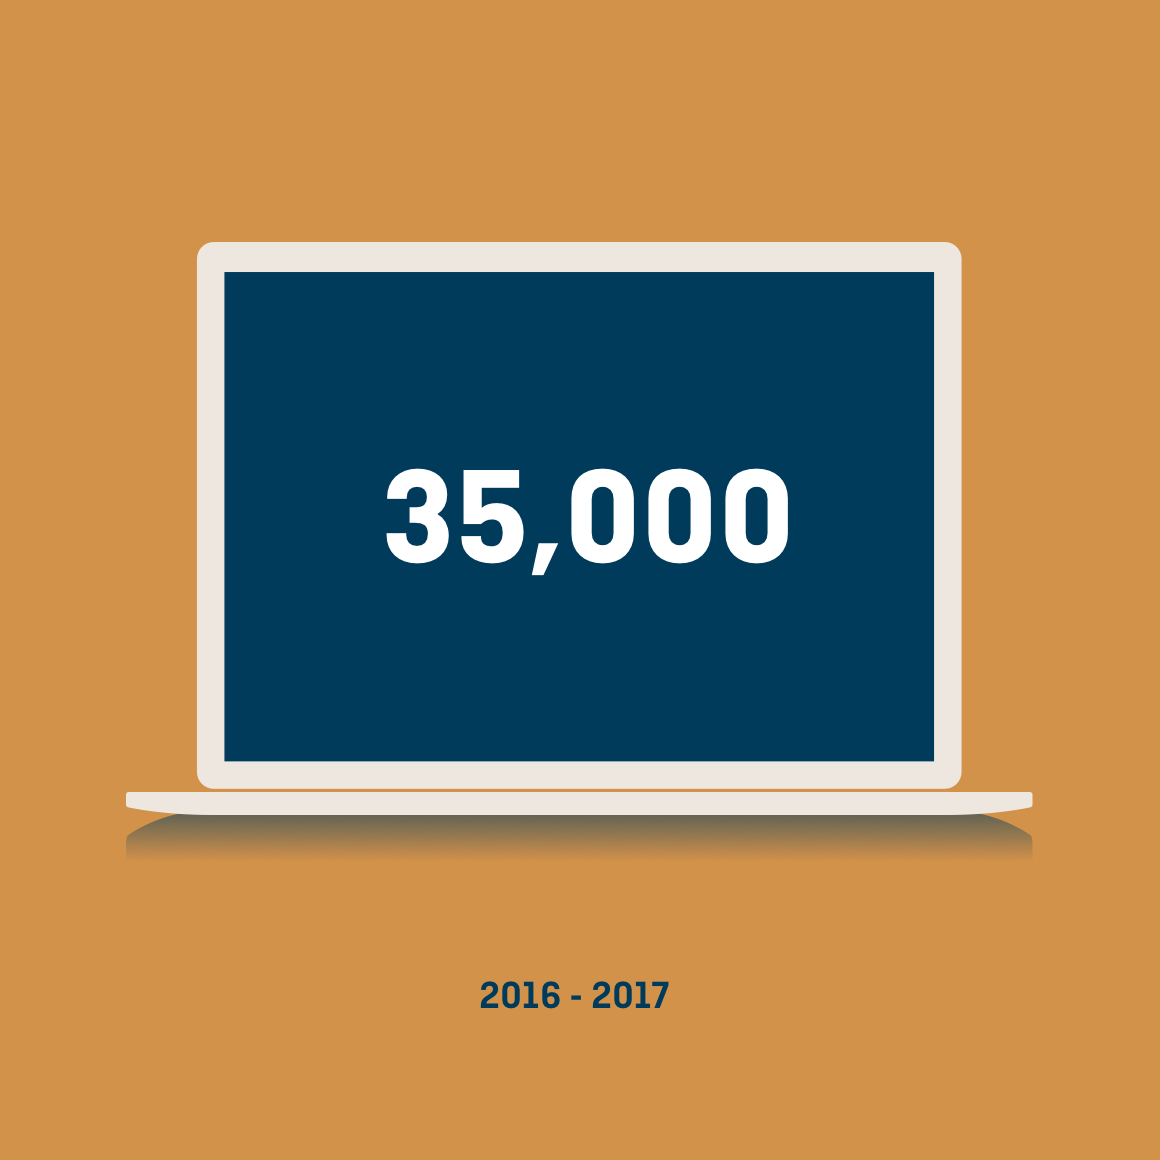 Graphic of open laptop displaying 35,000 conversions from 2026-2017